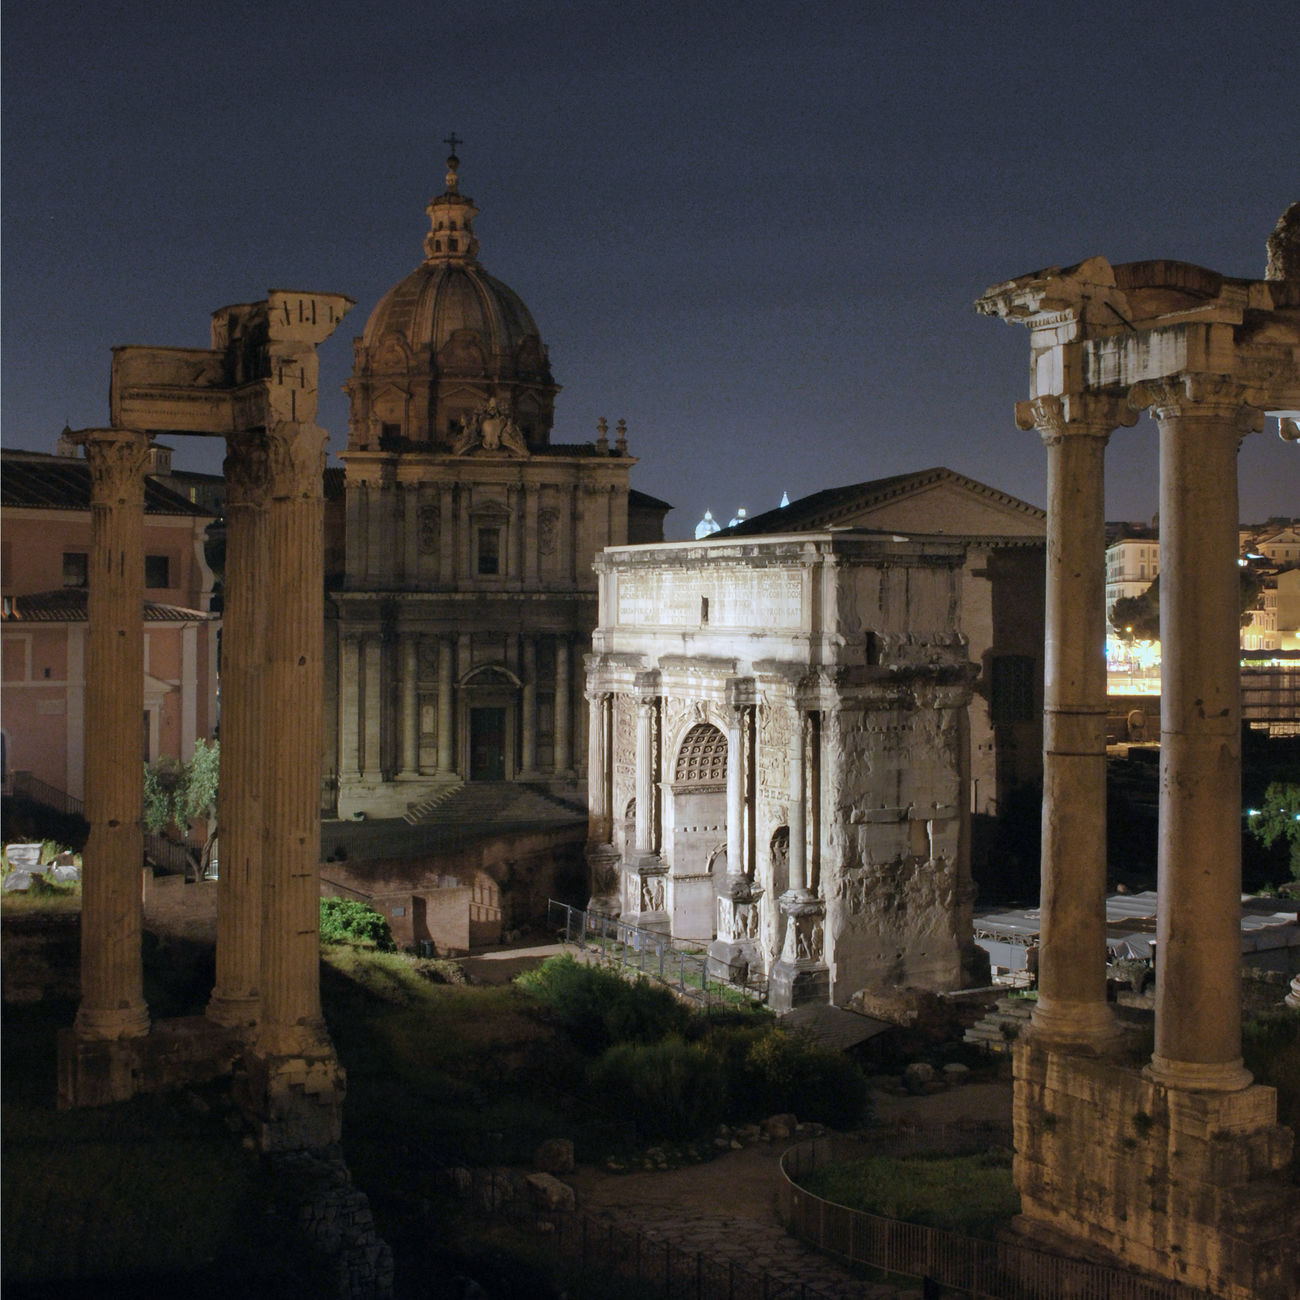 Architecture Foro Romano No People Roma Roma Di Notte Roman Forum Rome Rome By Night Rovine Ruins